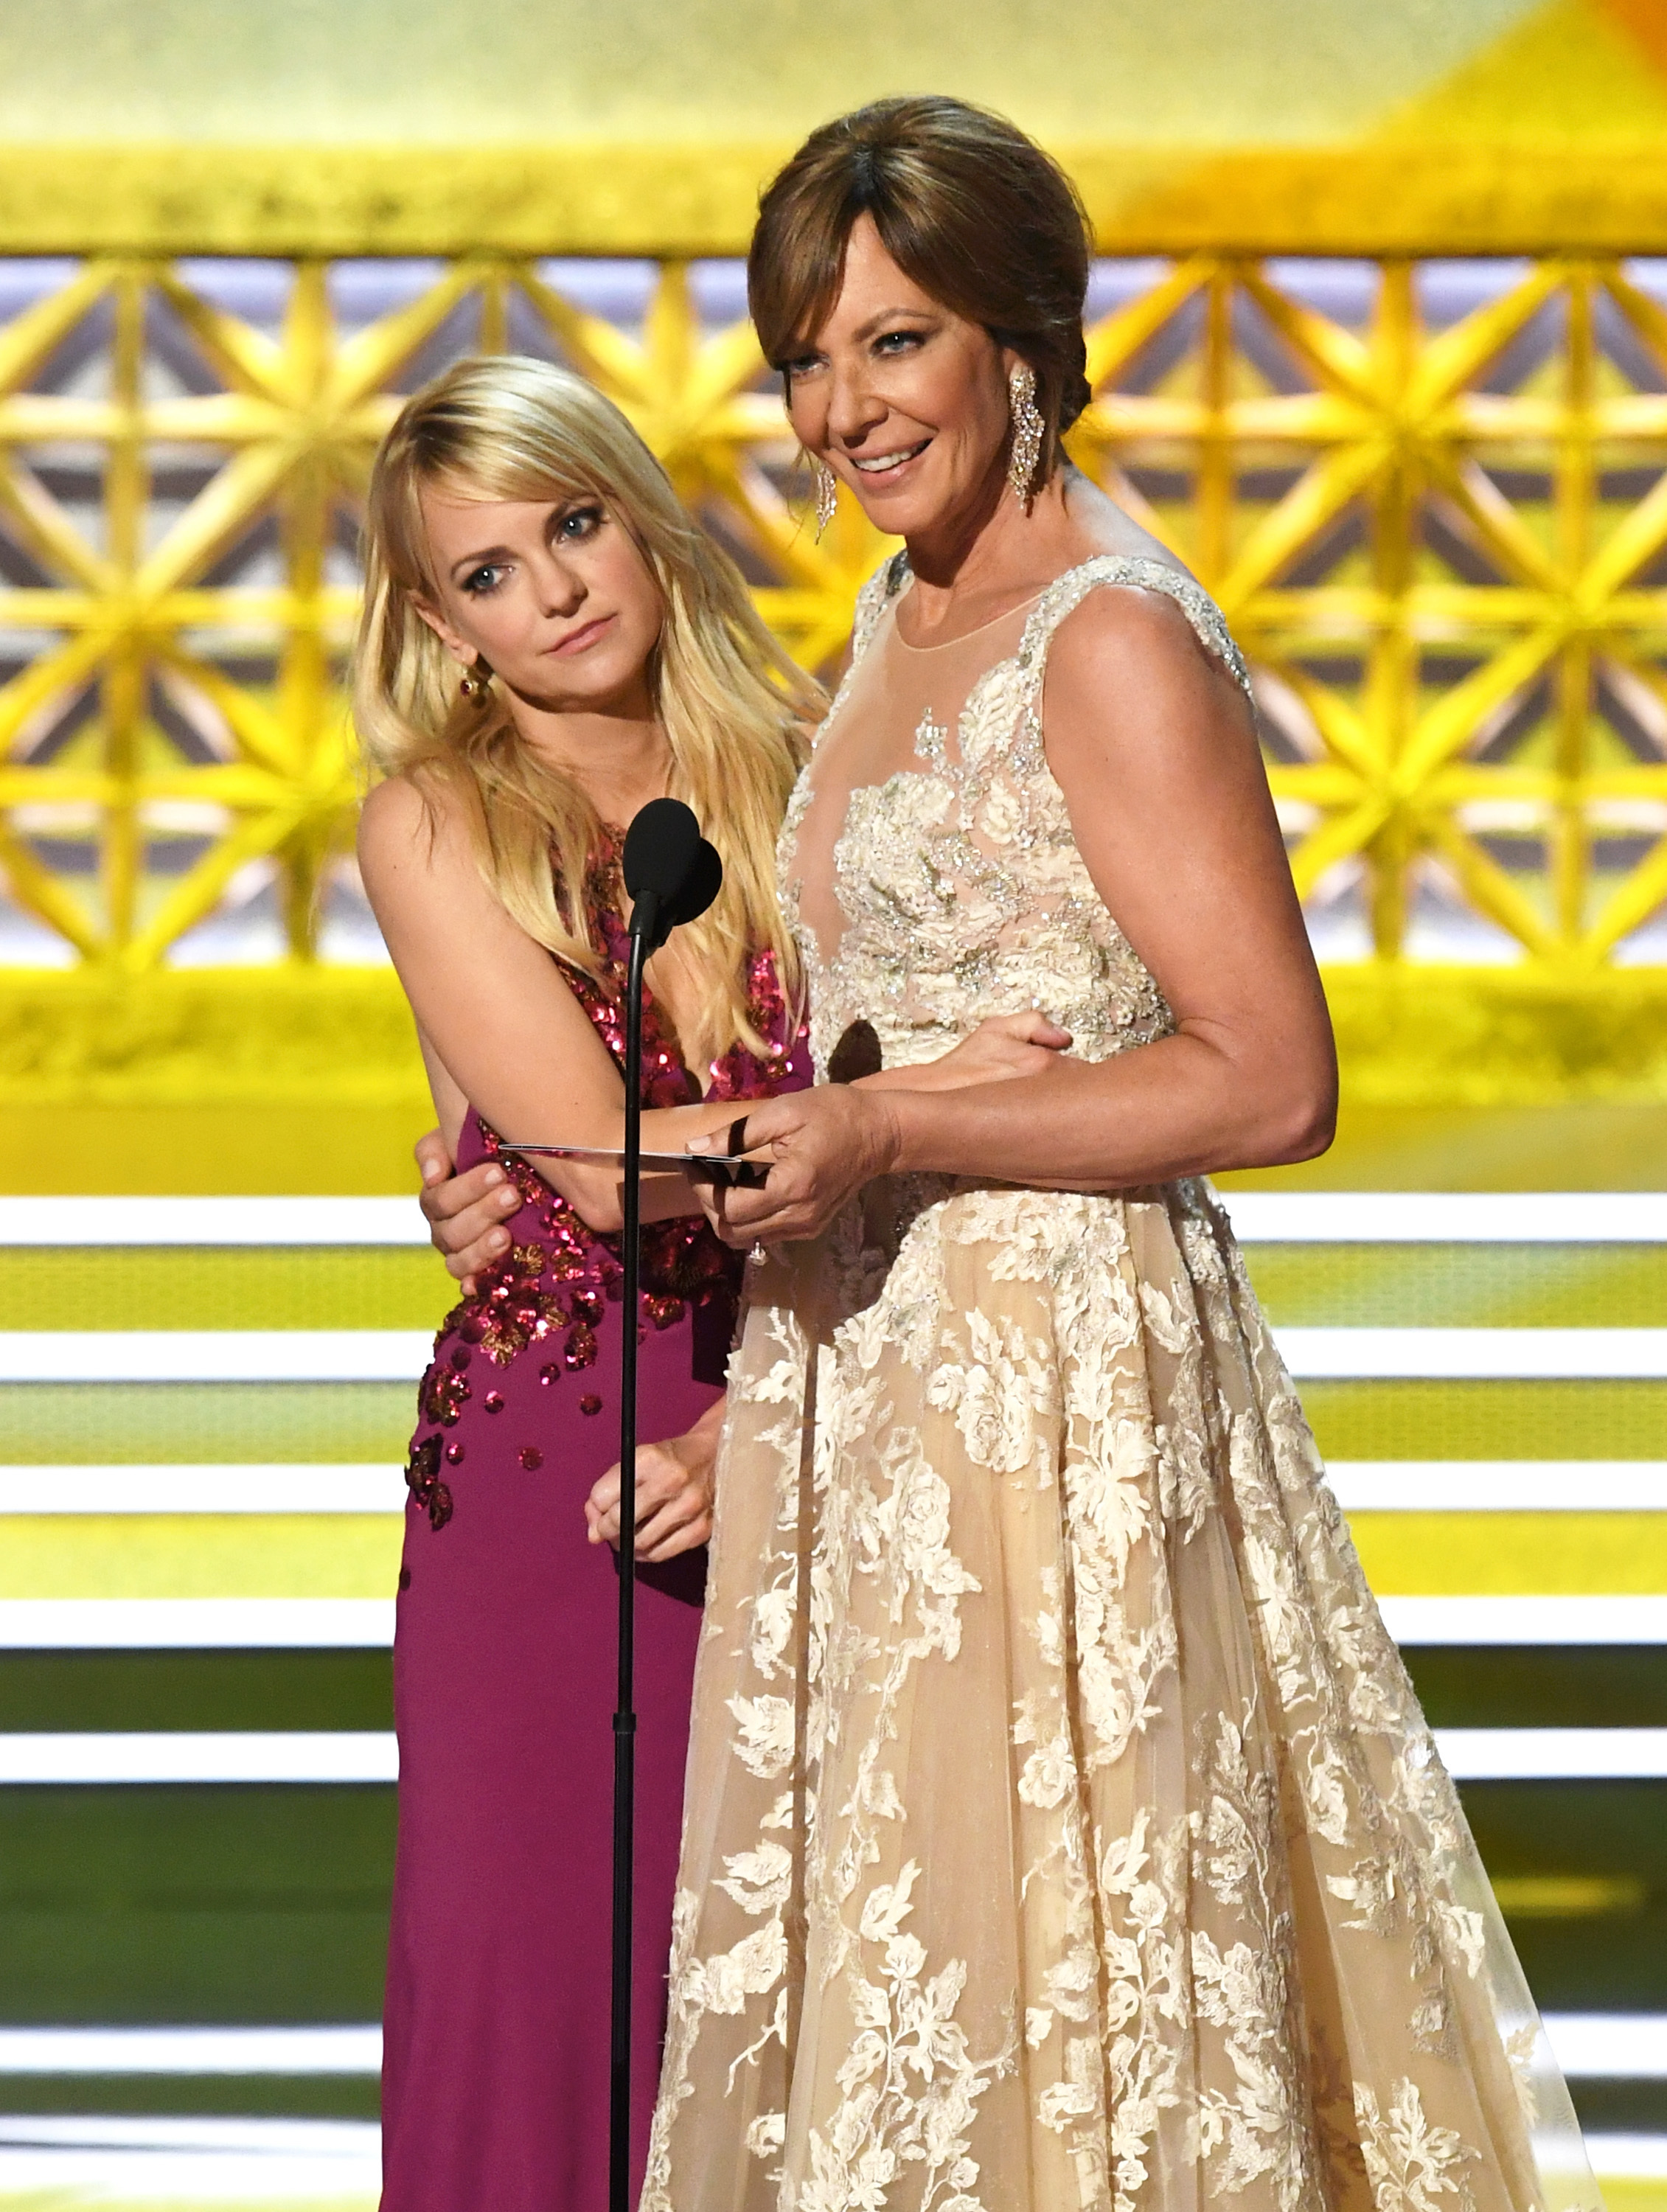 Anna Faris and Allison Janney present an award during the 69th Annual Primetime Emmy Awards at the Microsoft Theater in Los Angeles on Sept. 17, 2017.